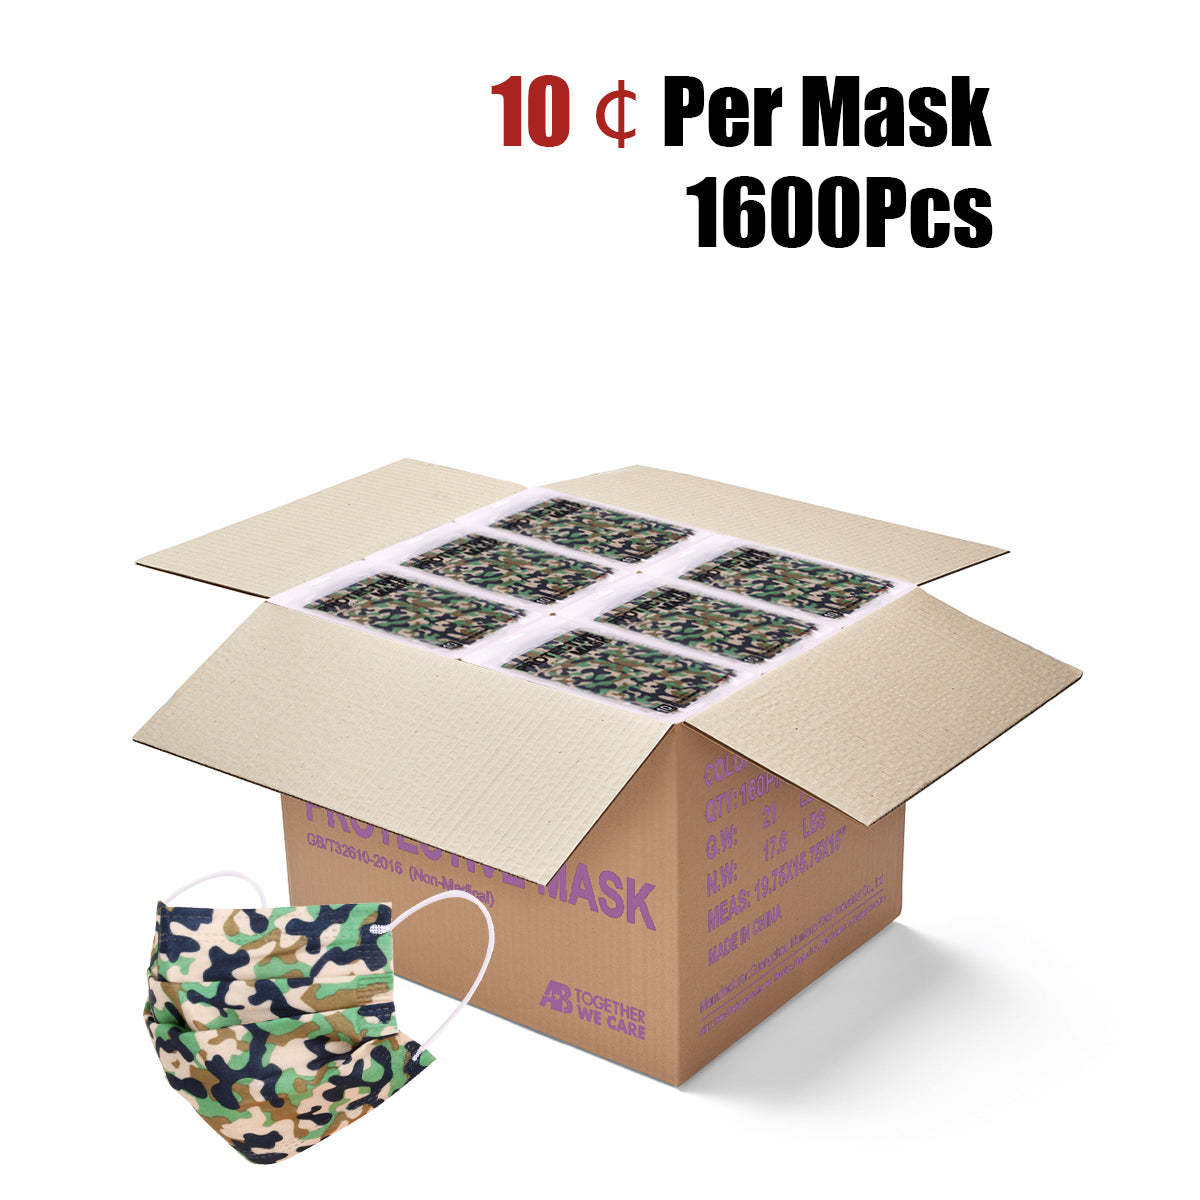 1600Pcs American Bling 10Pcs /Pack Green Camo Print 3Ply Disposable Face Masks